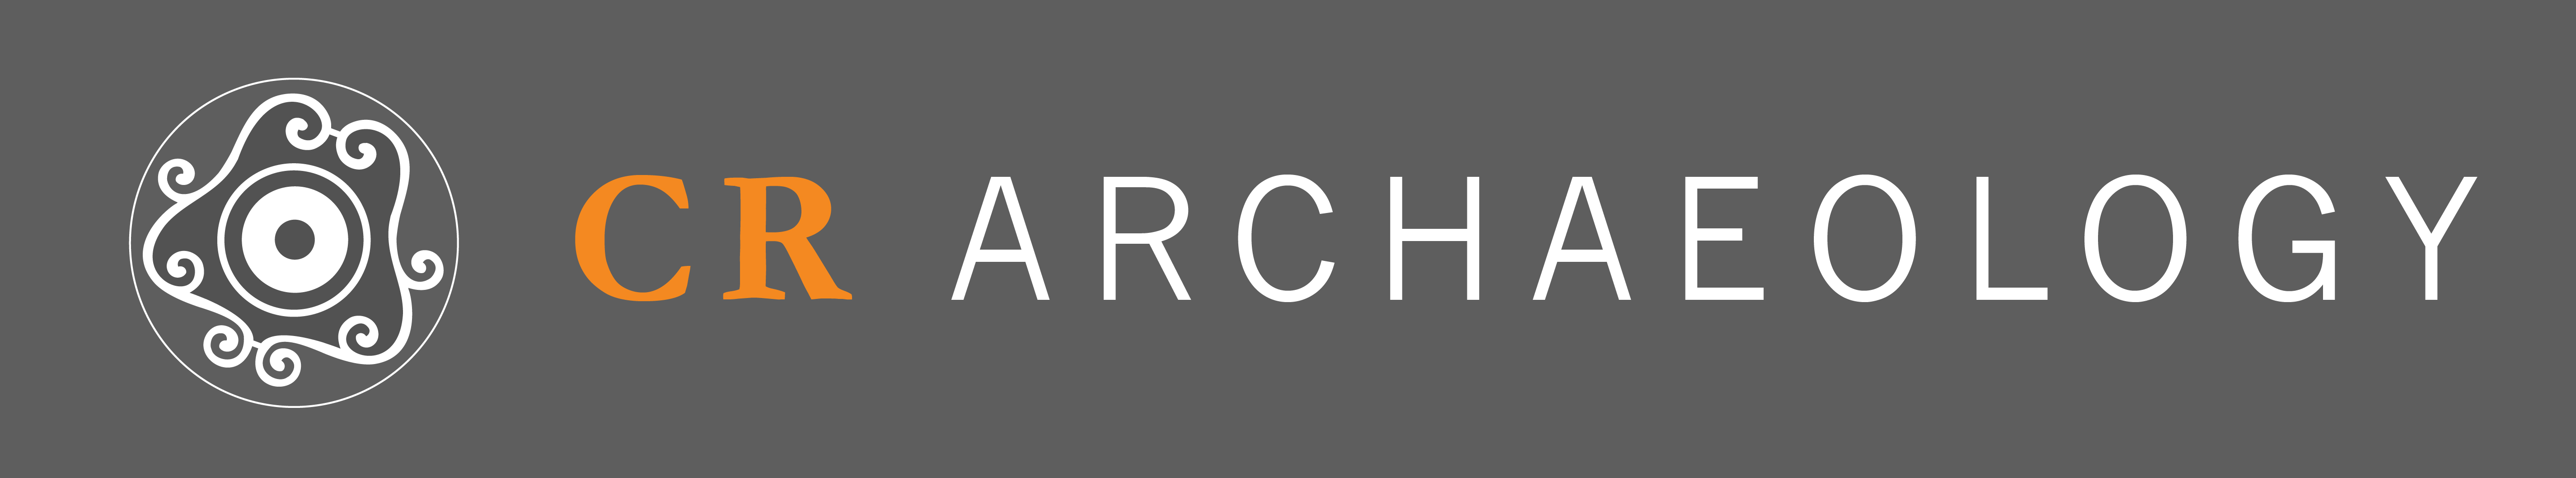 CR Archaeology logo